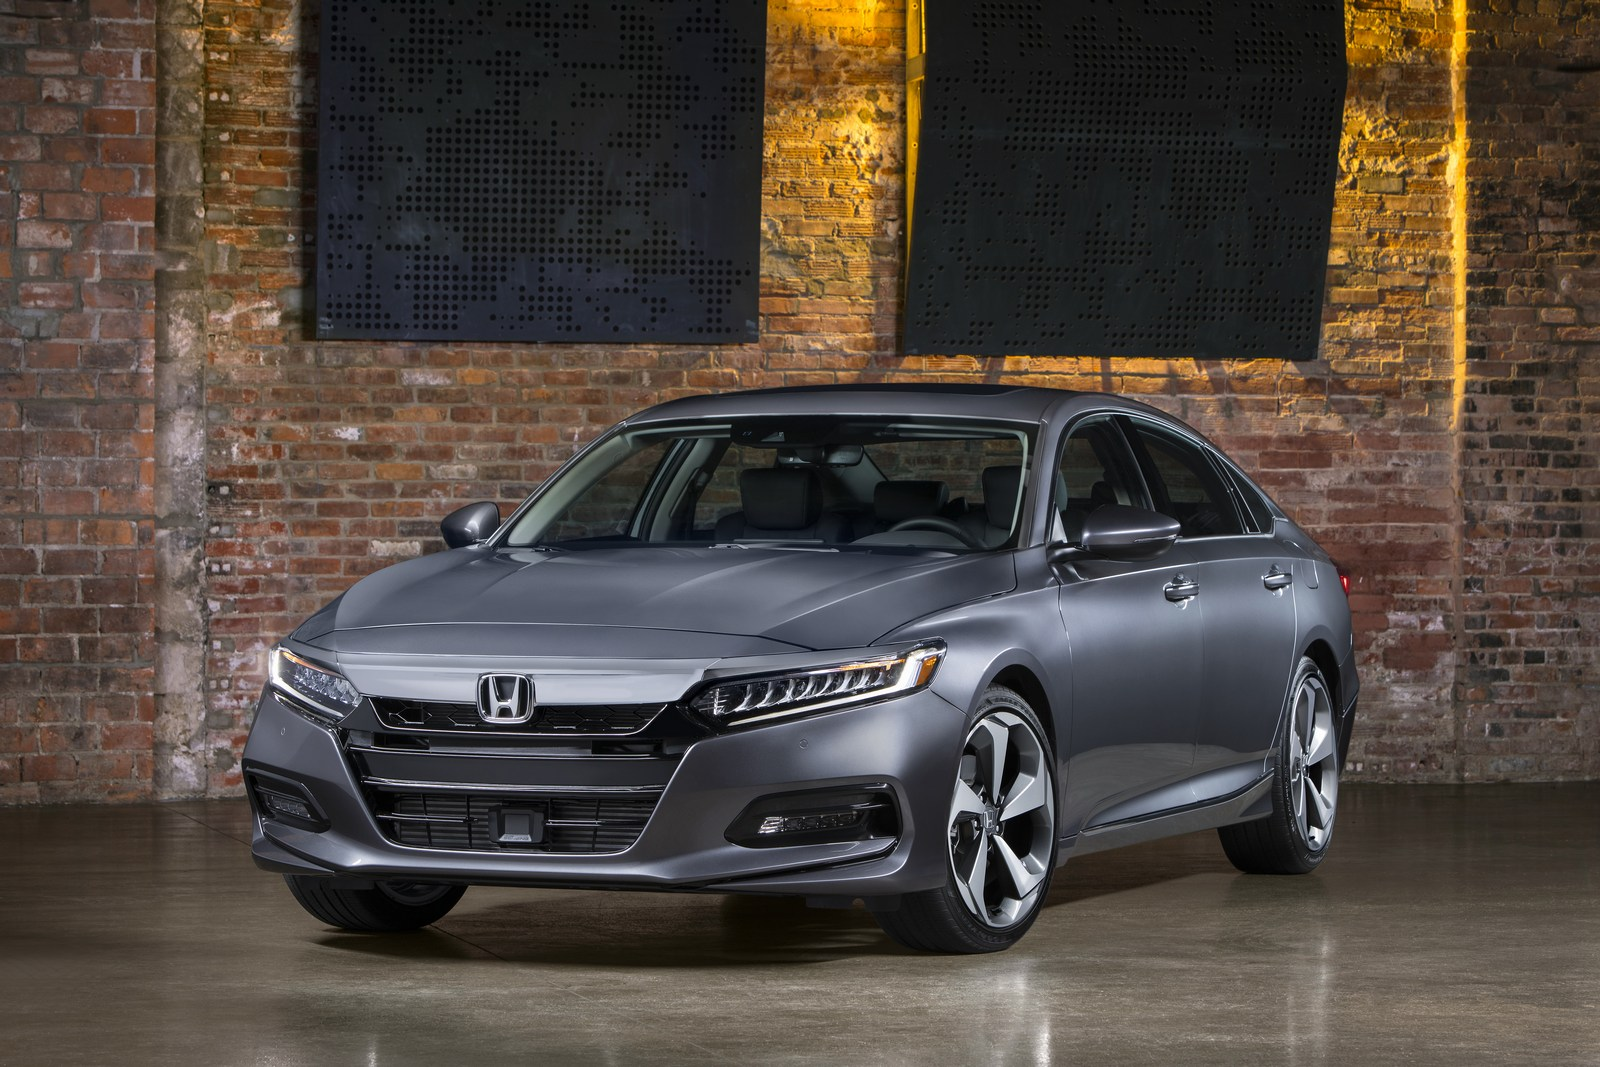 Honda Accord 2018 (11)